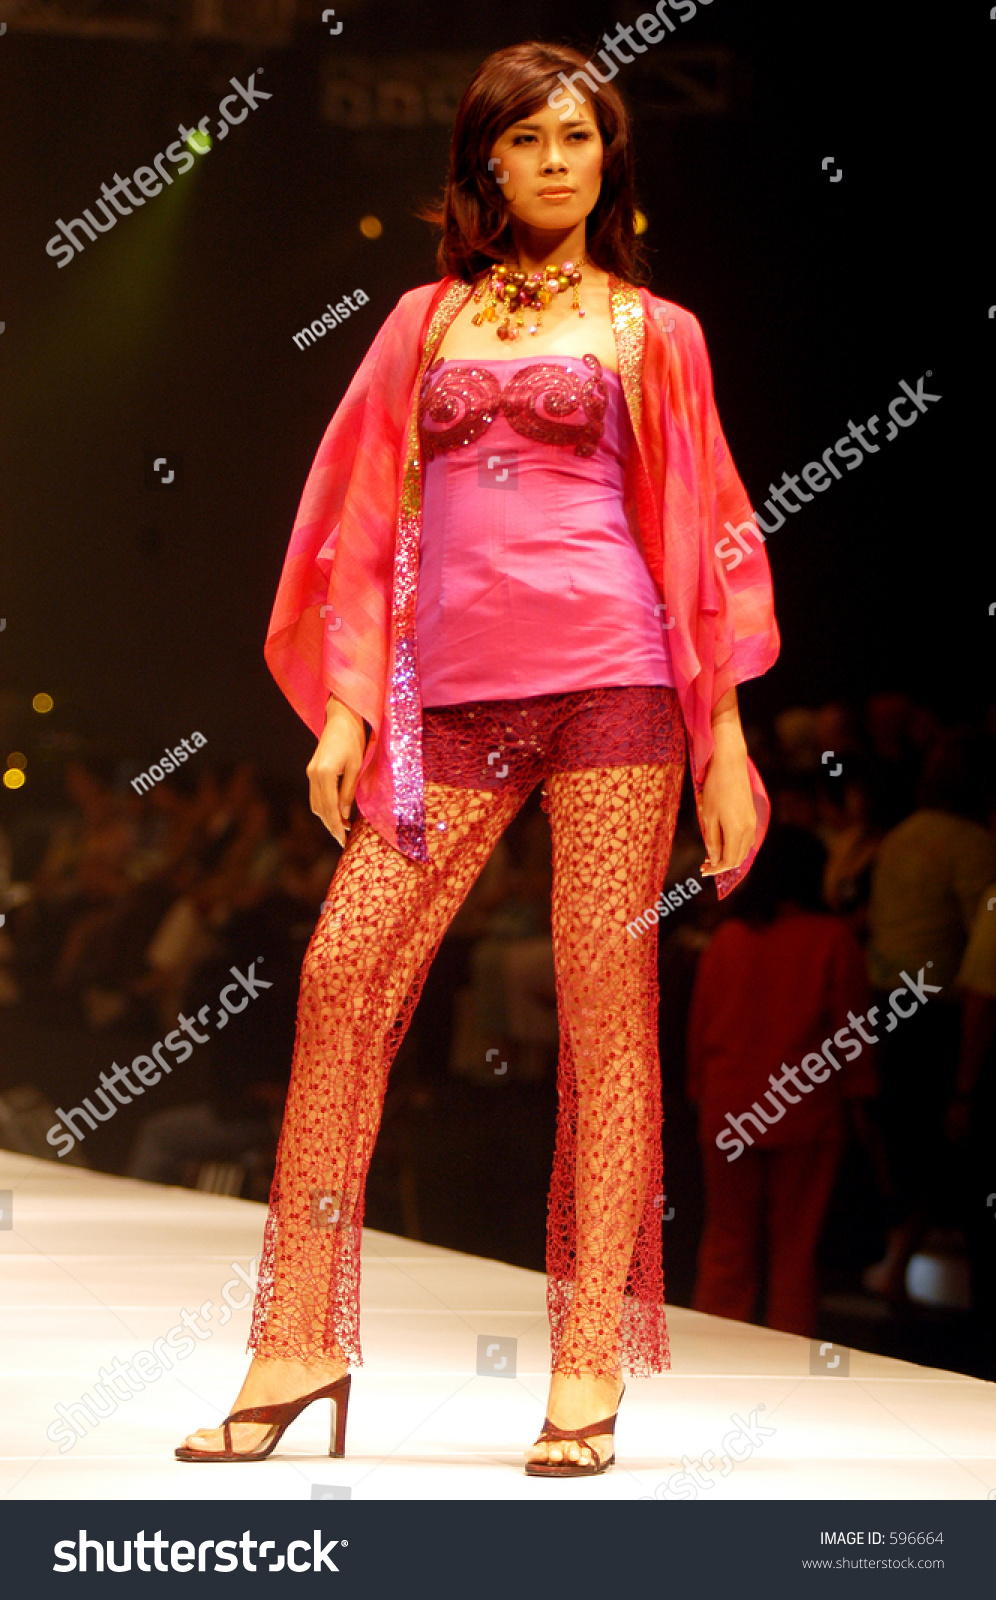 Fashion Show By Tuty Cholid Inspired By Bohemian And Indian Culture Custom Collections